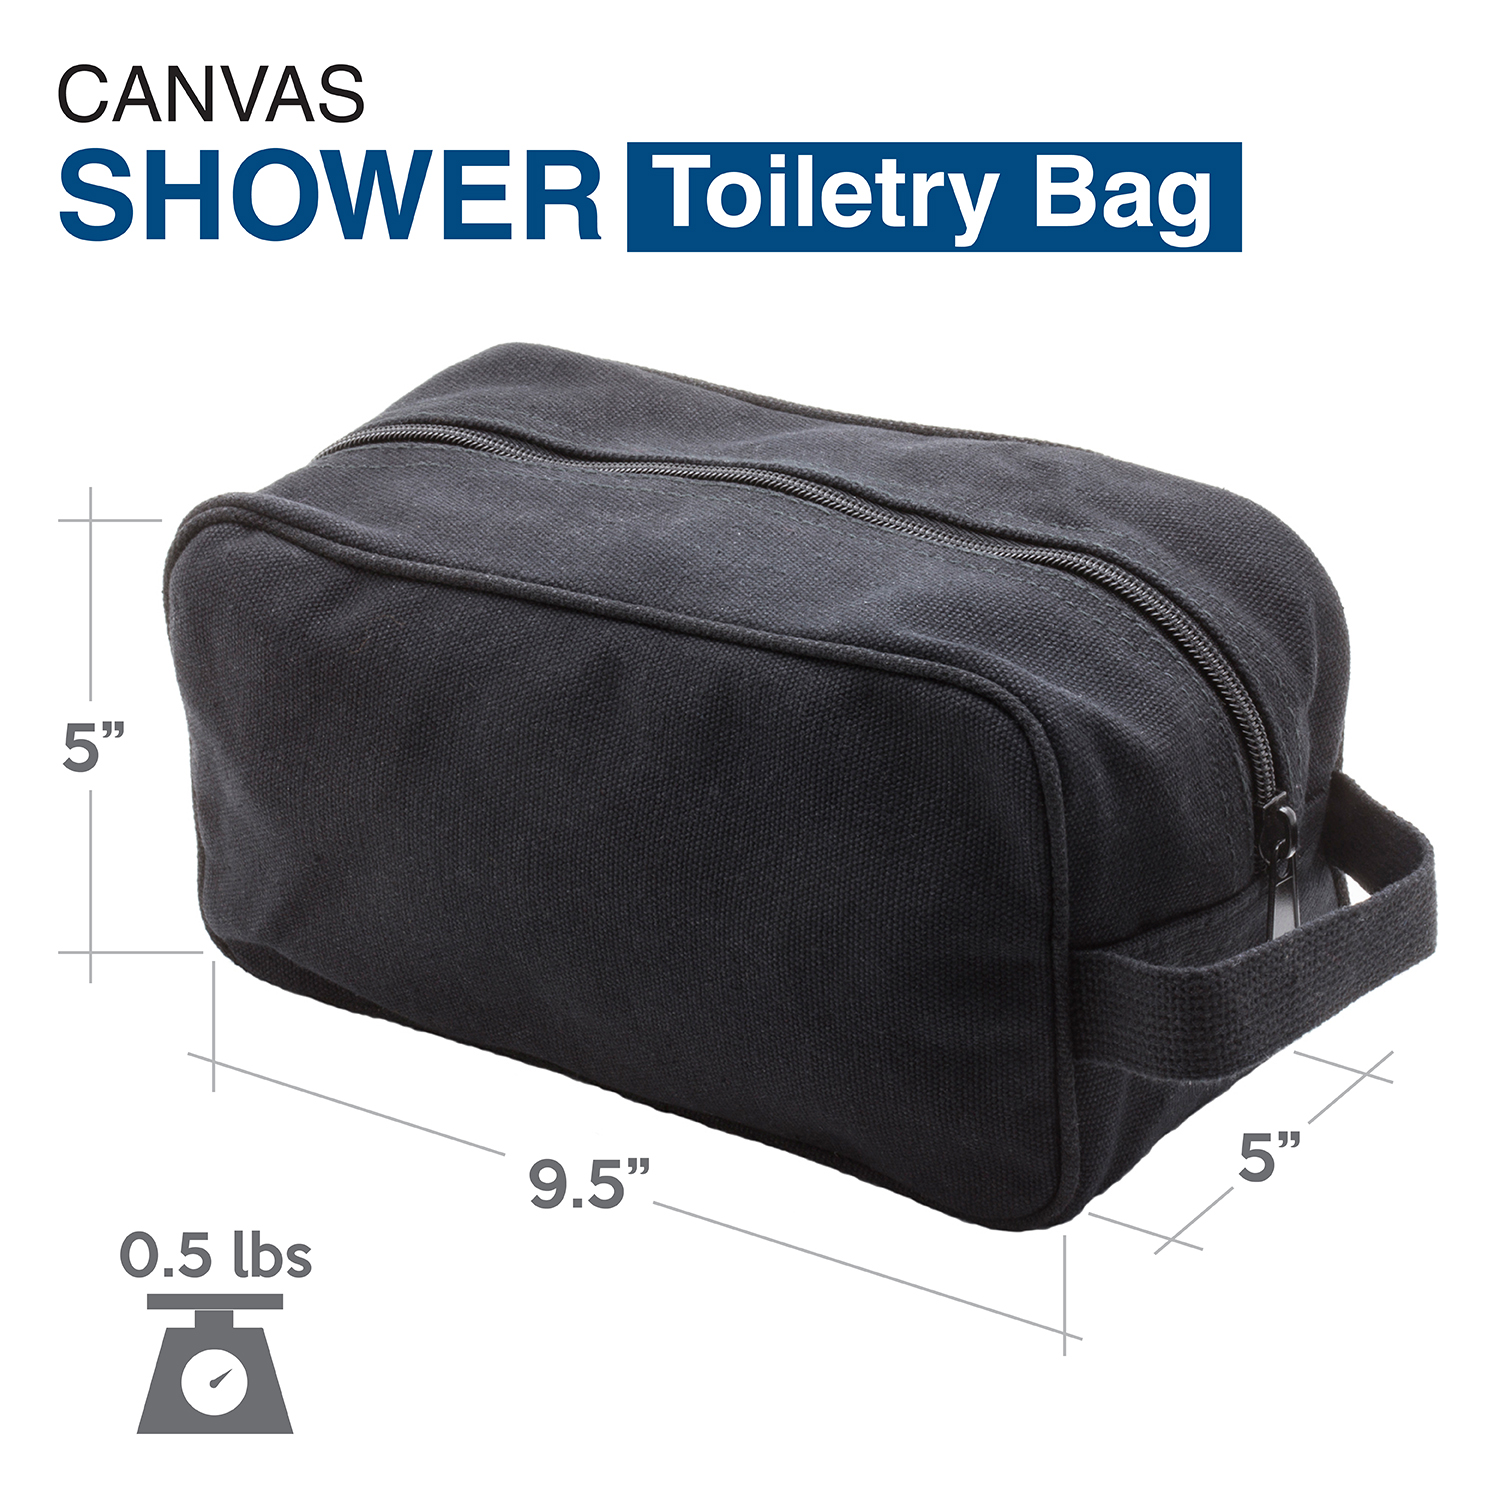 Ruger-Firearms-Canvas-Shower-Kit-Travel-Toiletry-Bag-Case thumbnail 3